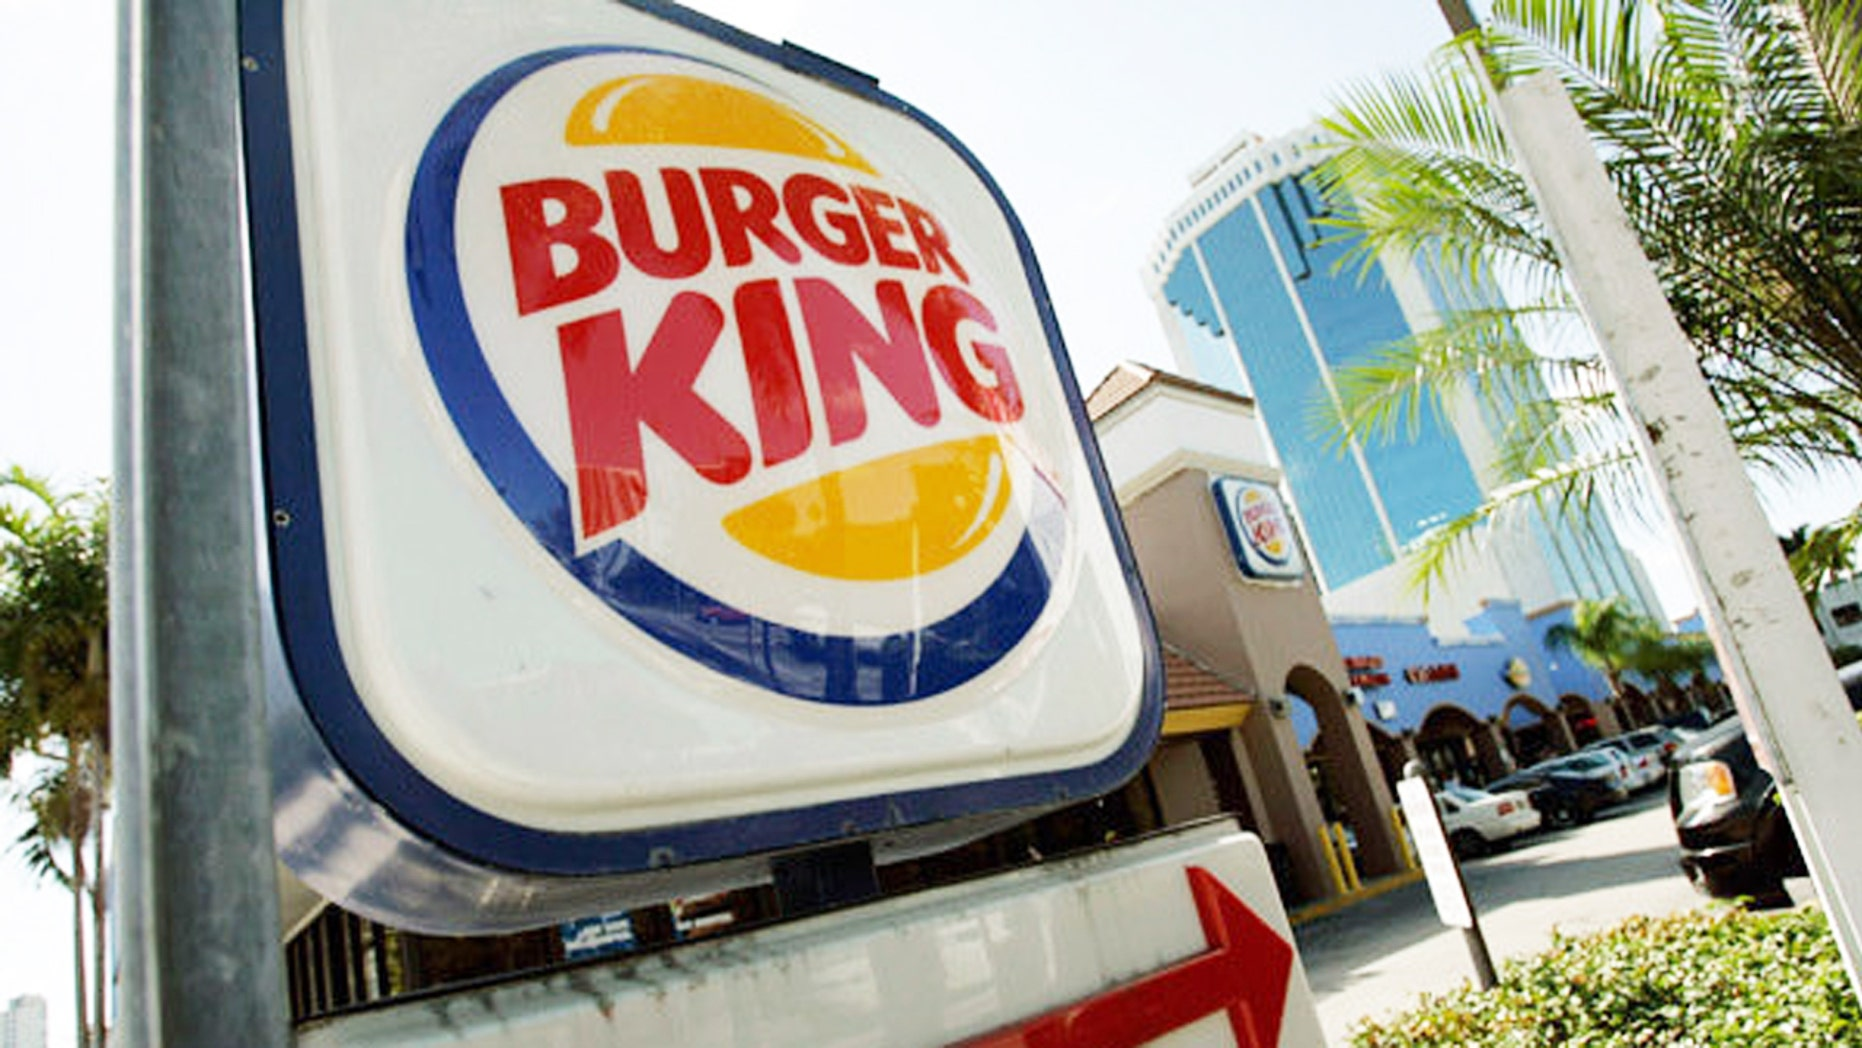 Burger King unveiled a multi-item menu for customers on a real budget.